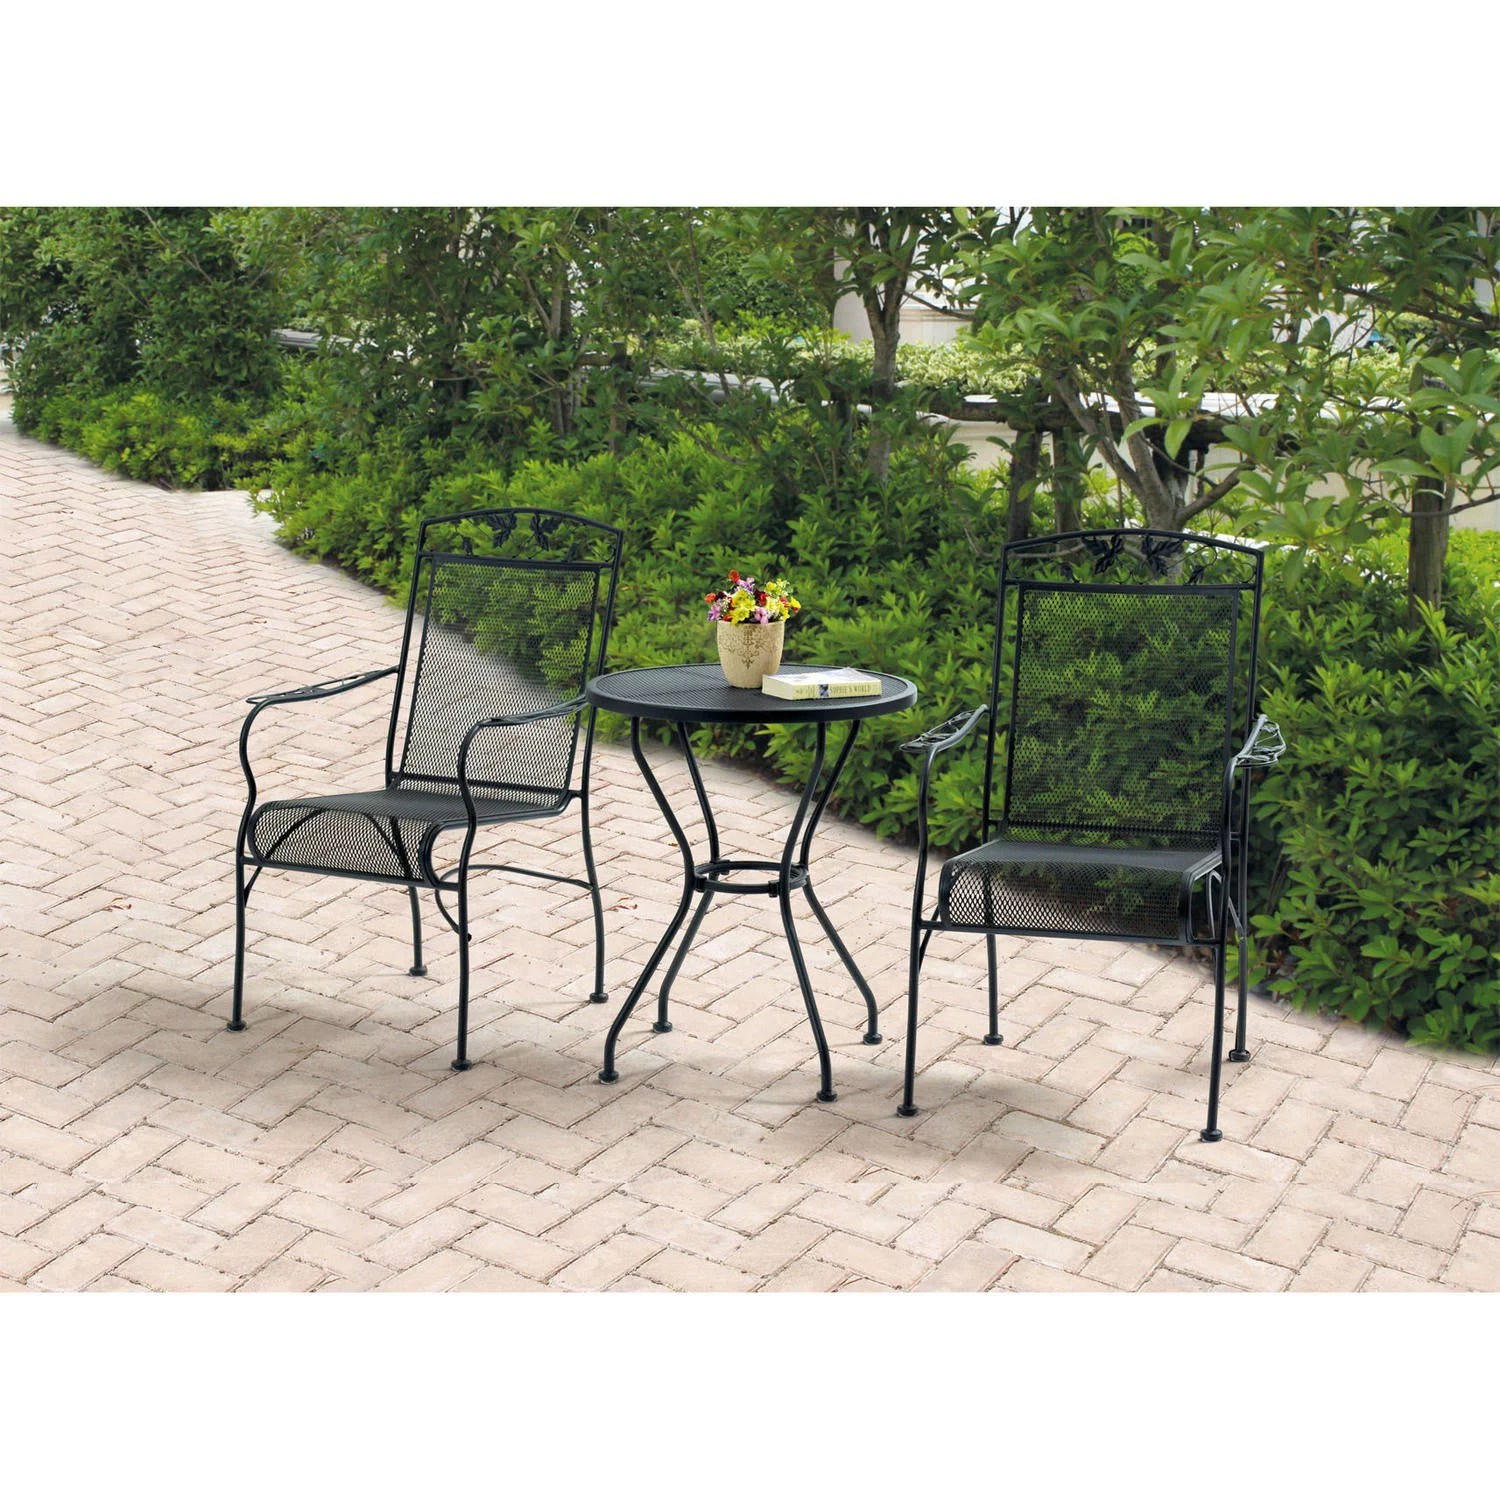 3 piece outdoor table and chairs stool chair pouf mainstays jefferson wrought iron bistro set black seats 2 walmart com